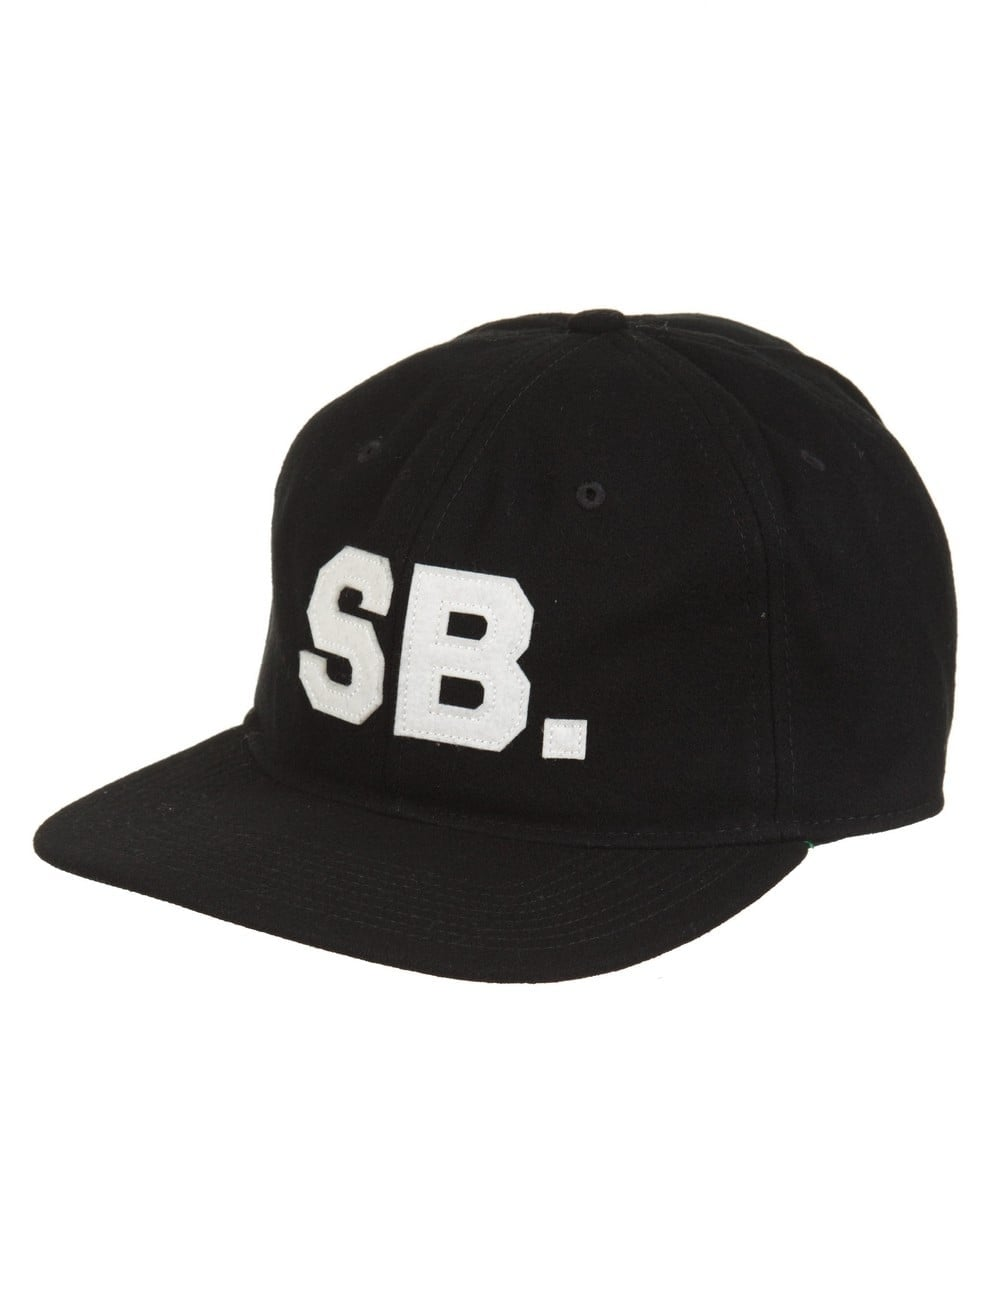 Nike SB Infield Pro Snapback Hat - Black - Hat Shop from Fat Buddha ... 7de8a865c15